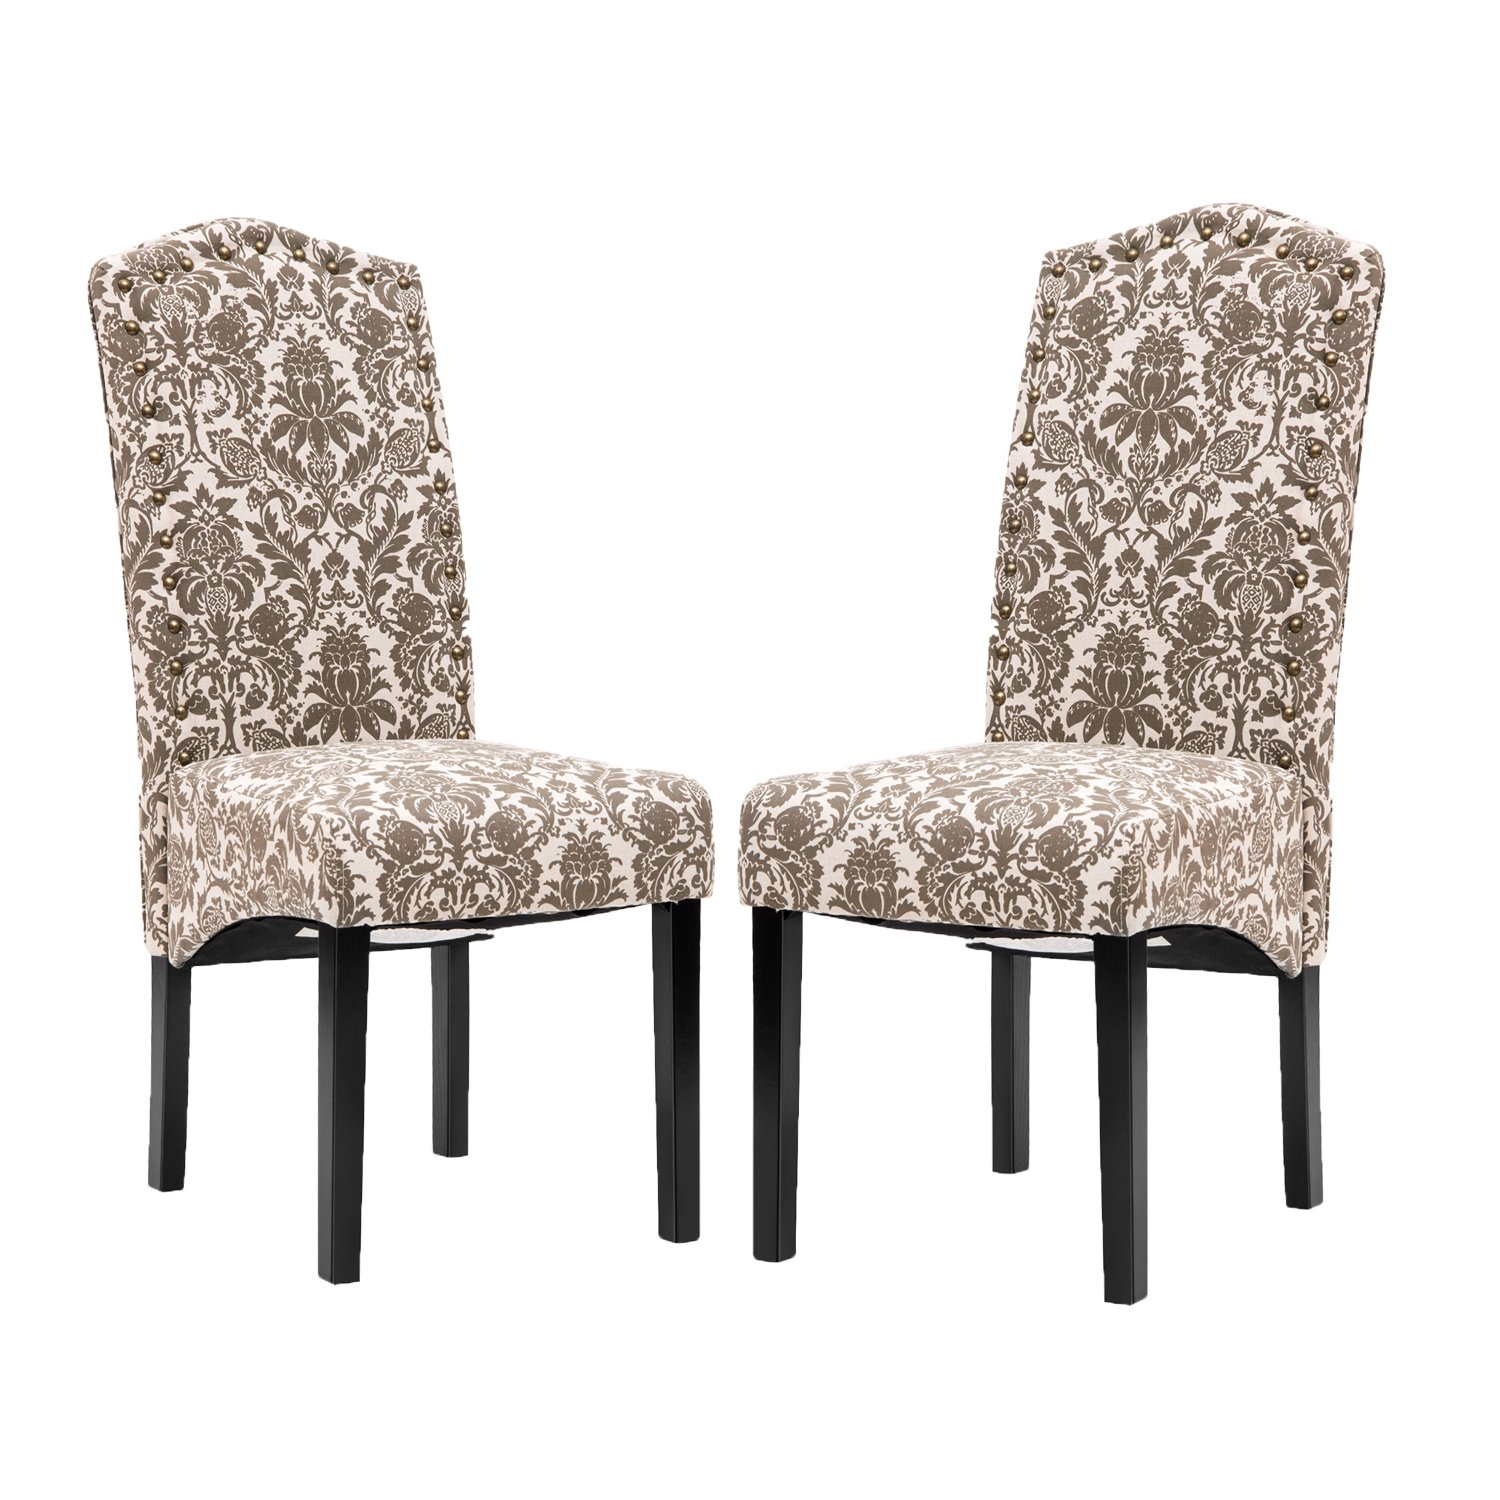 Merax PP036312EAA Ding Chair Fabric Accent Dining Room Solid Wood Legs, 18'' W x 22'' D x 41'' H, floarl